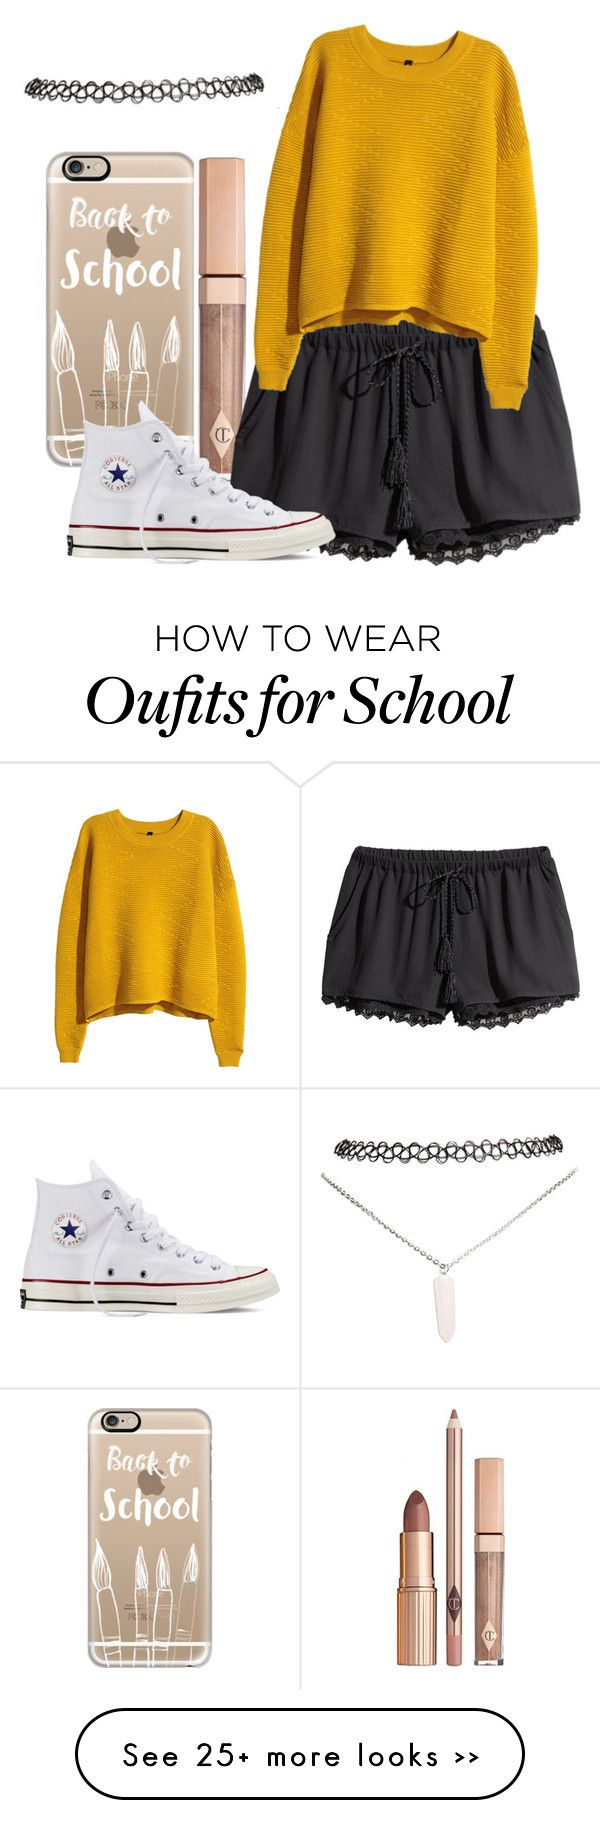 """back to school"" by princetonwife4life on Polyvore featuring Casetify, H&M, Converse and Wet Seal"